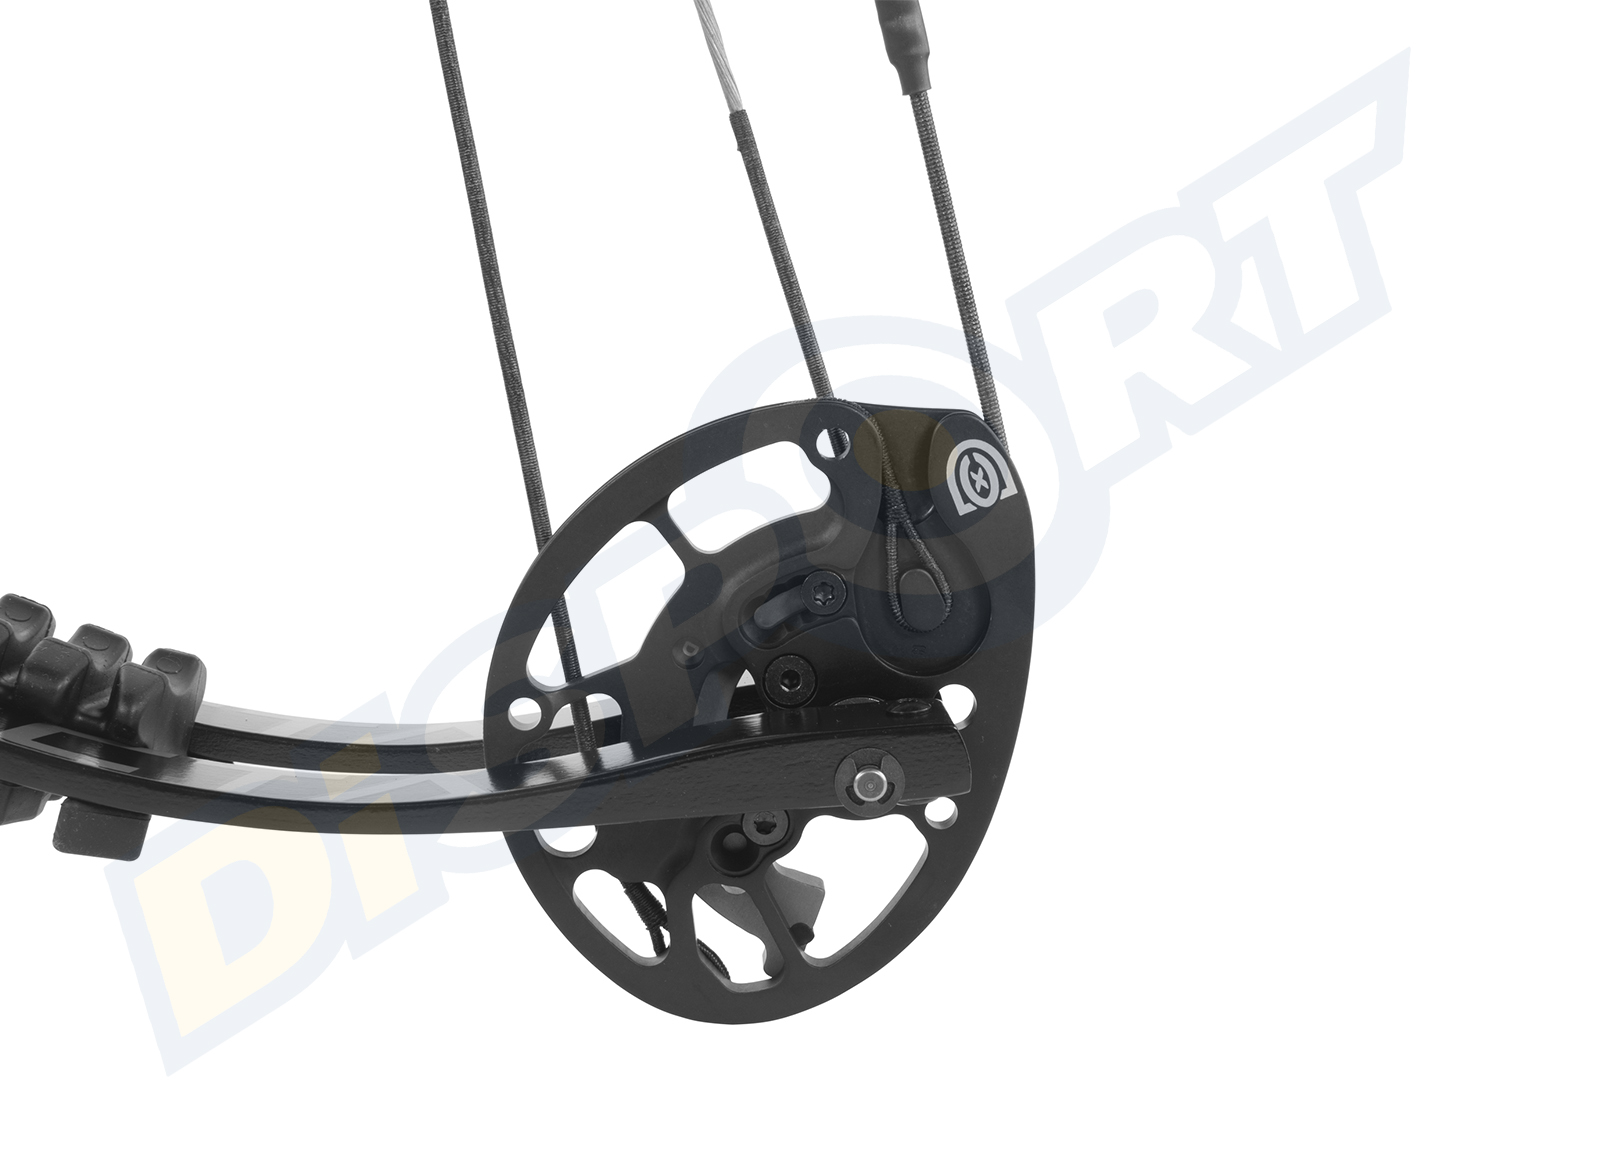 HOYT COMPOUND INVICTA 37 DCX 2020 COLOR